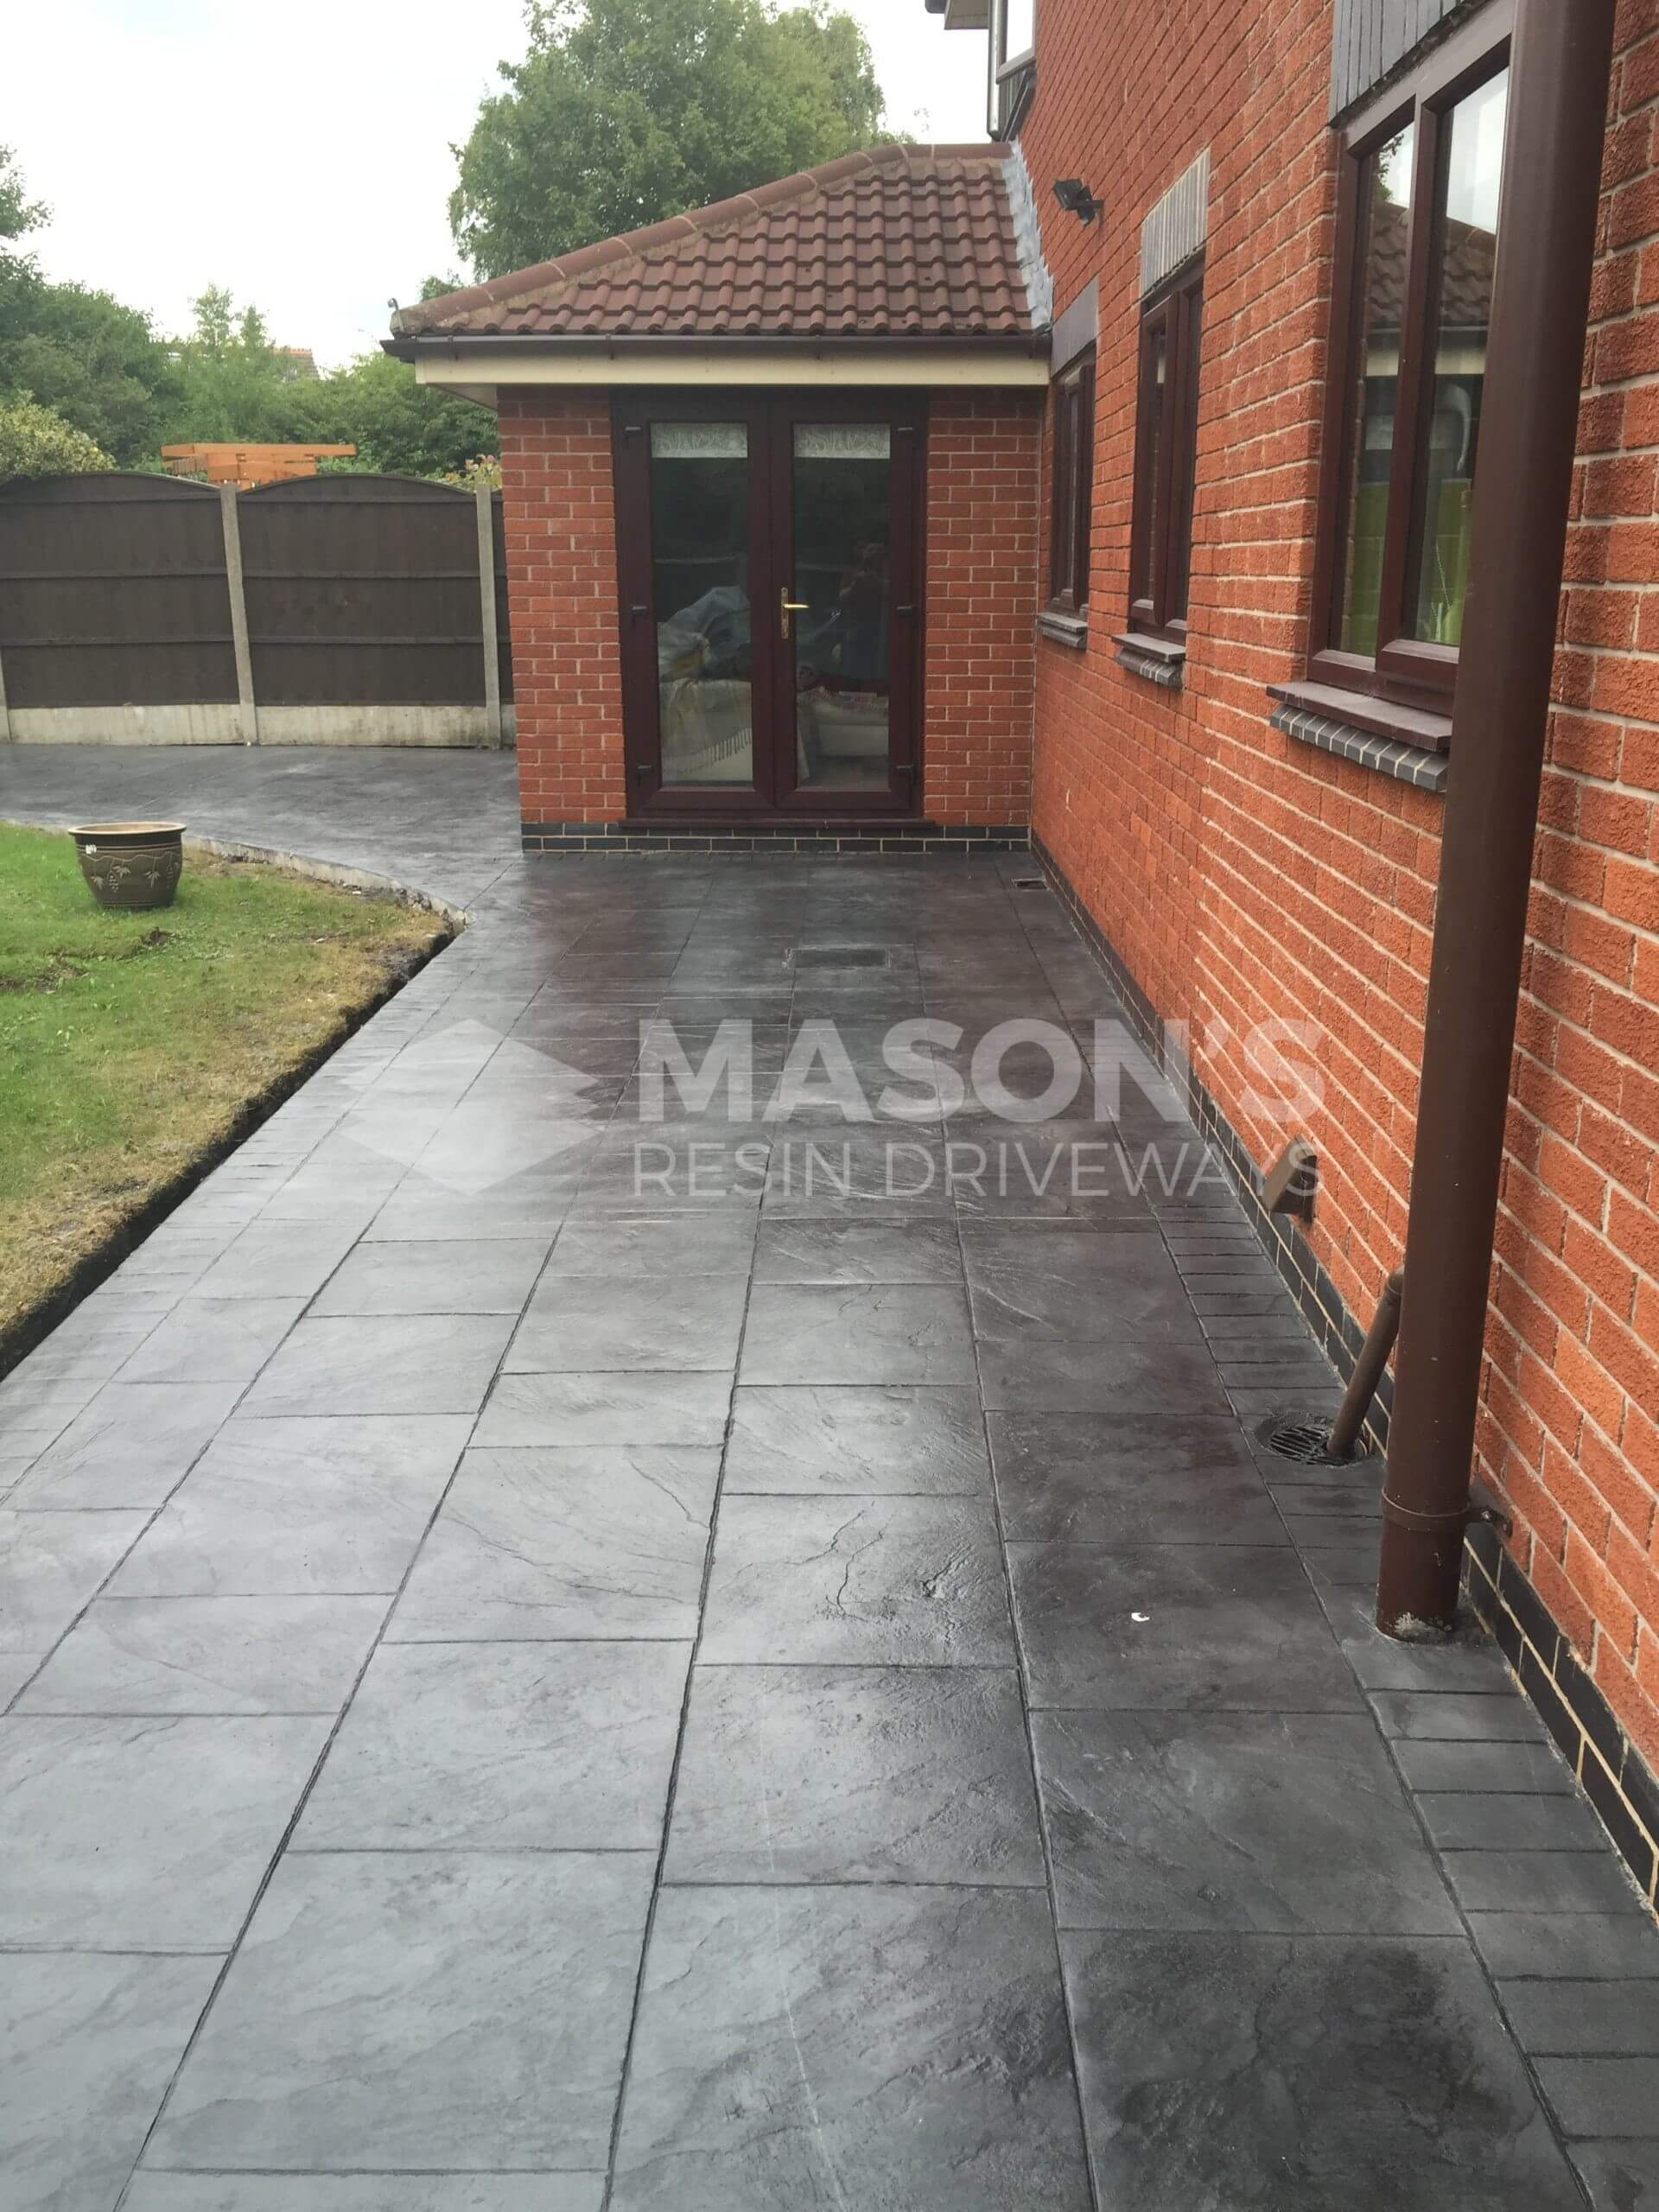 back garden door pattern imprinted concrete driveway preston, lancashire